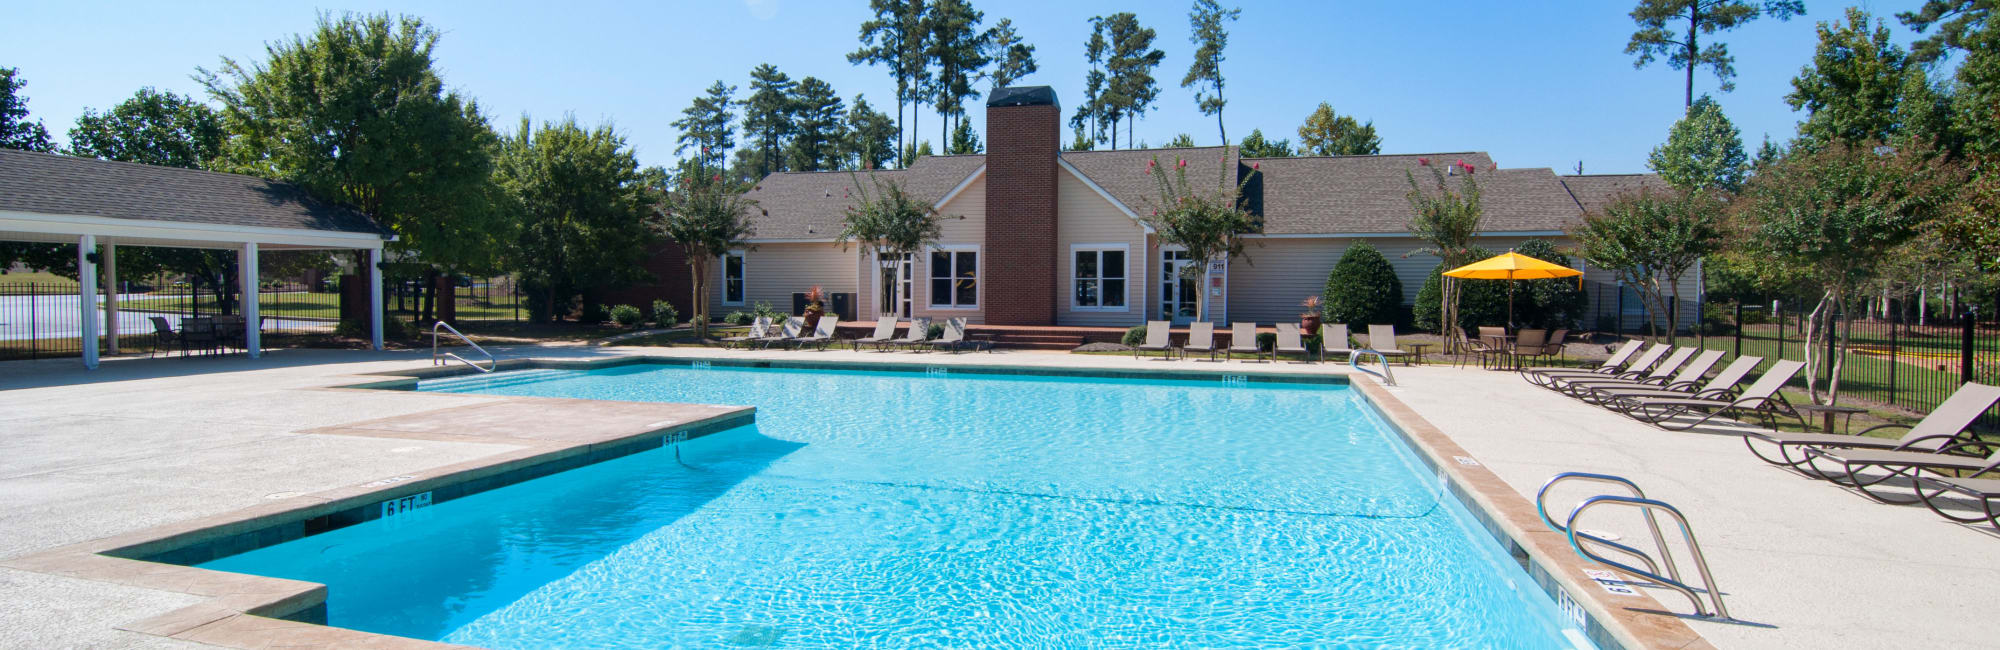 Apartments at Amber Chase Apartment Homes in McDonough, Georgia